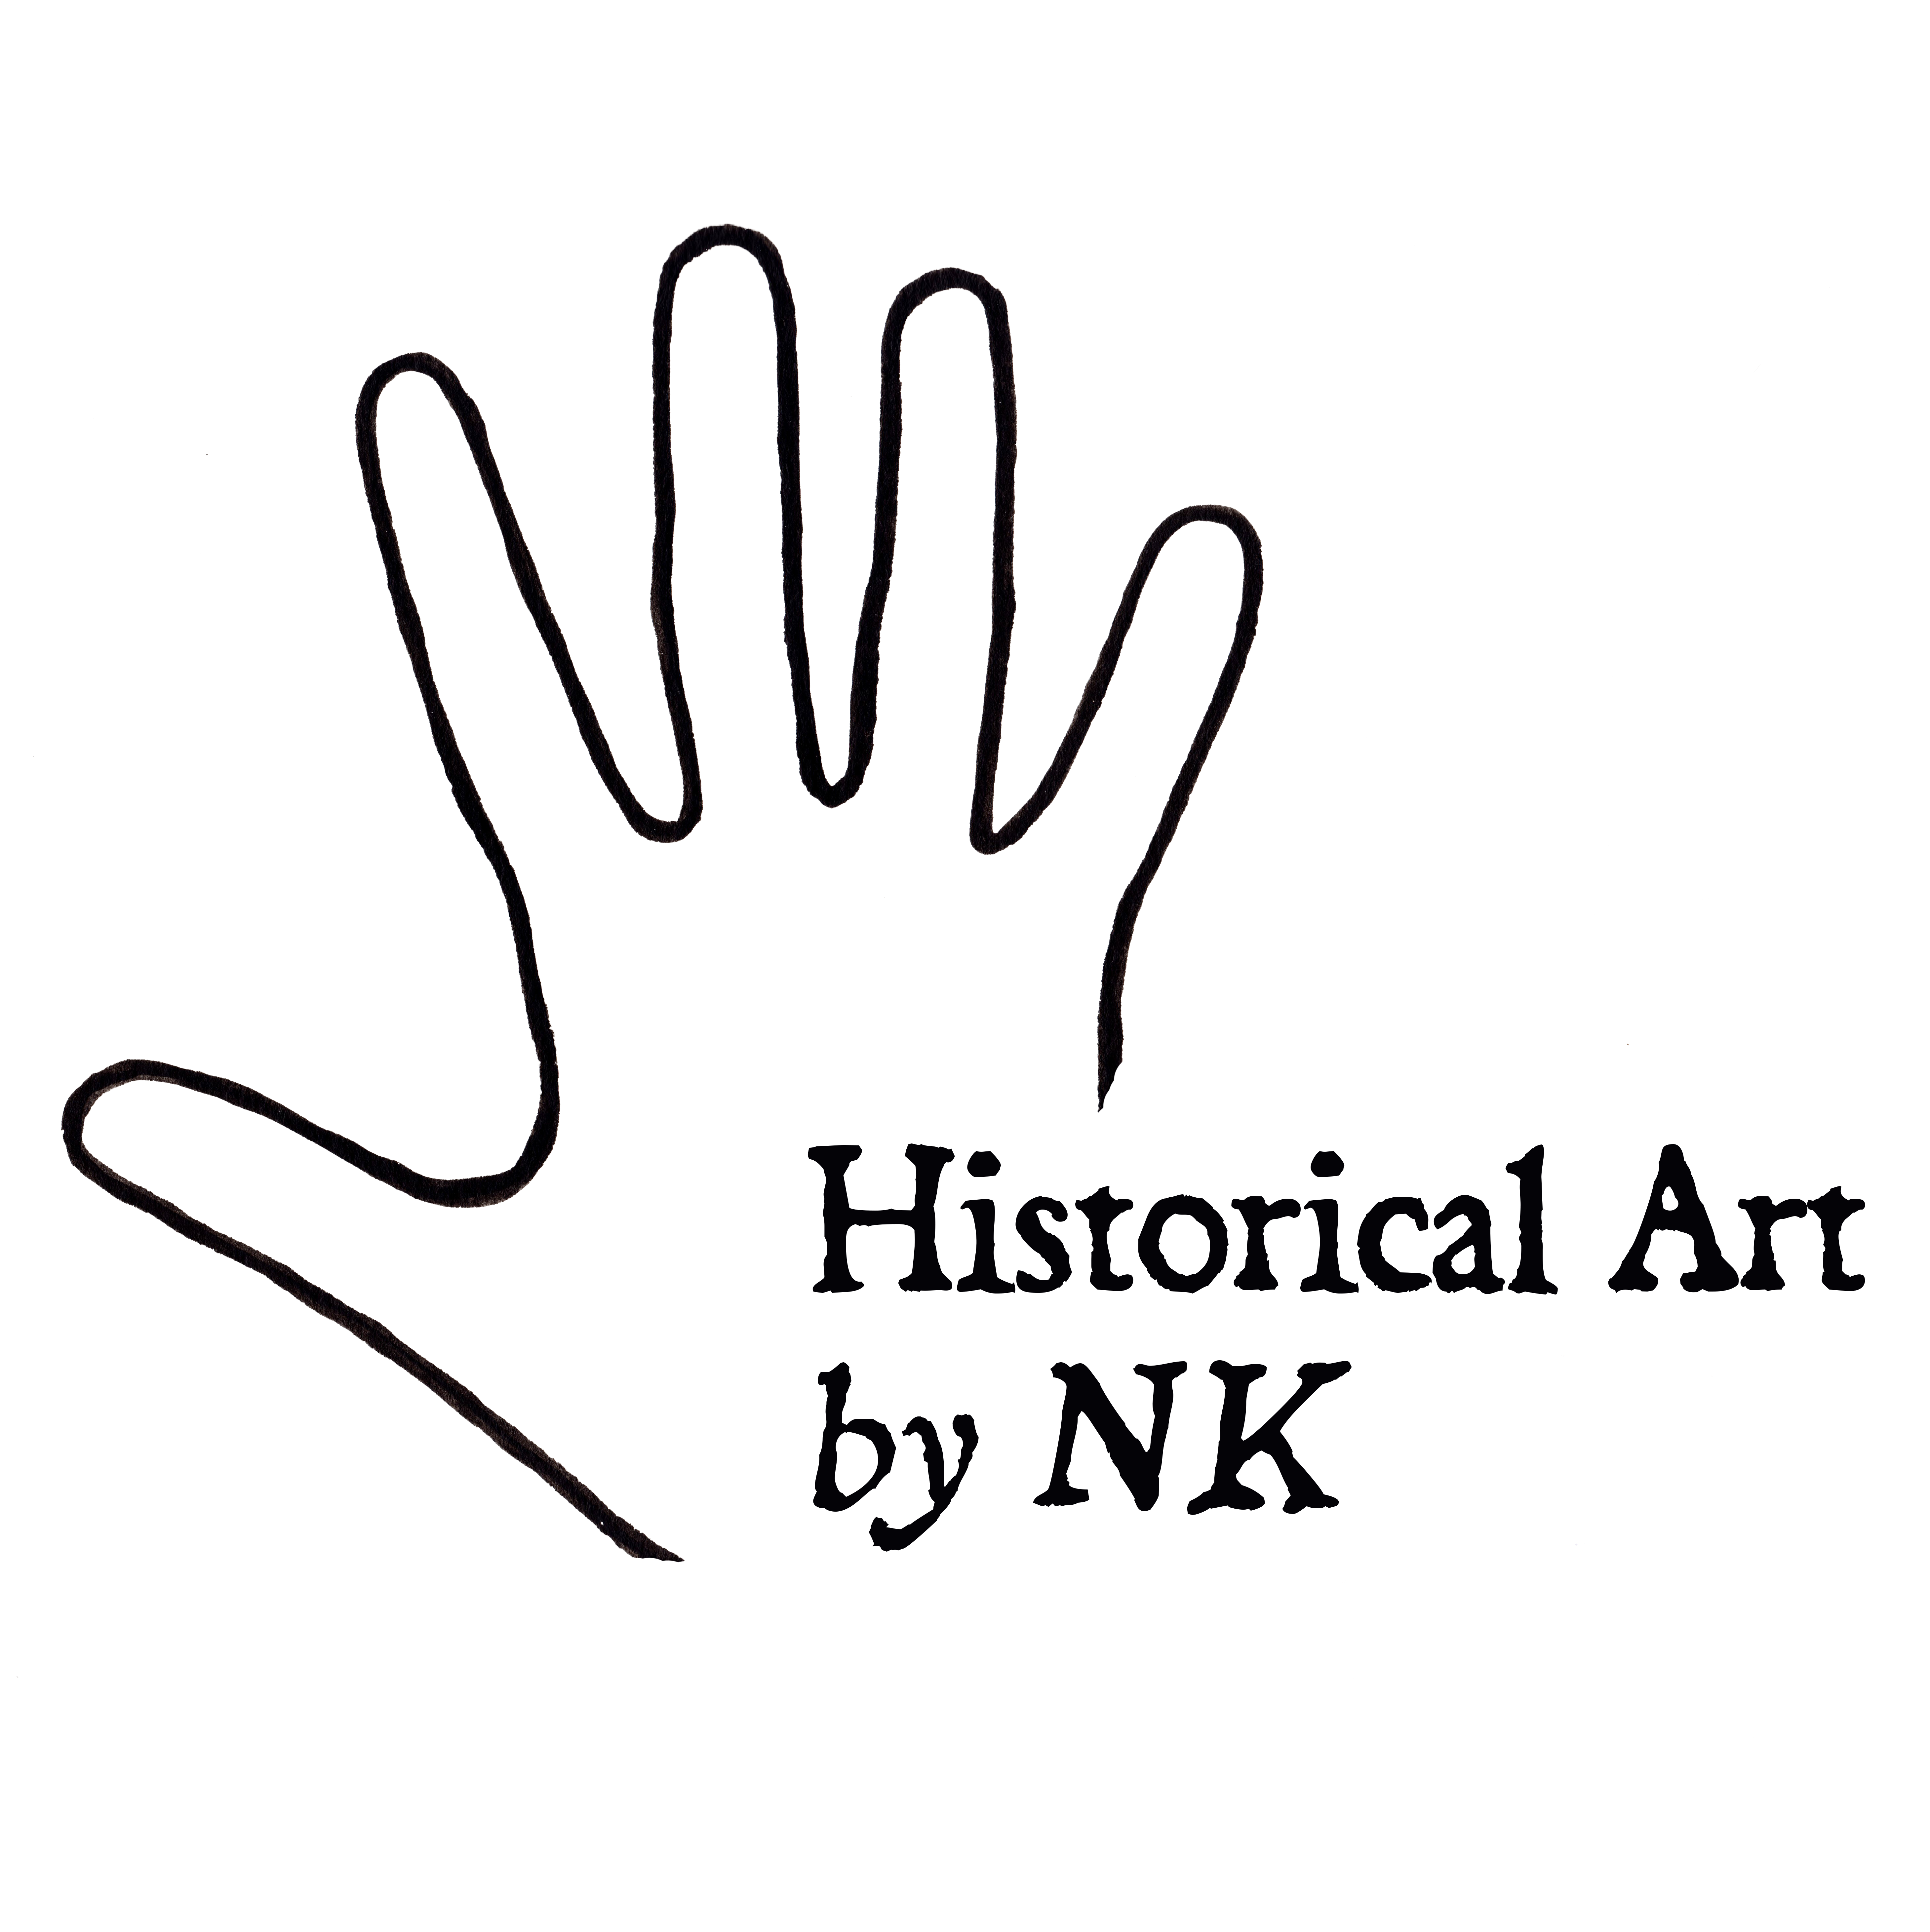 Historical art by NK